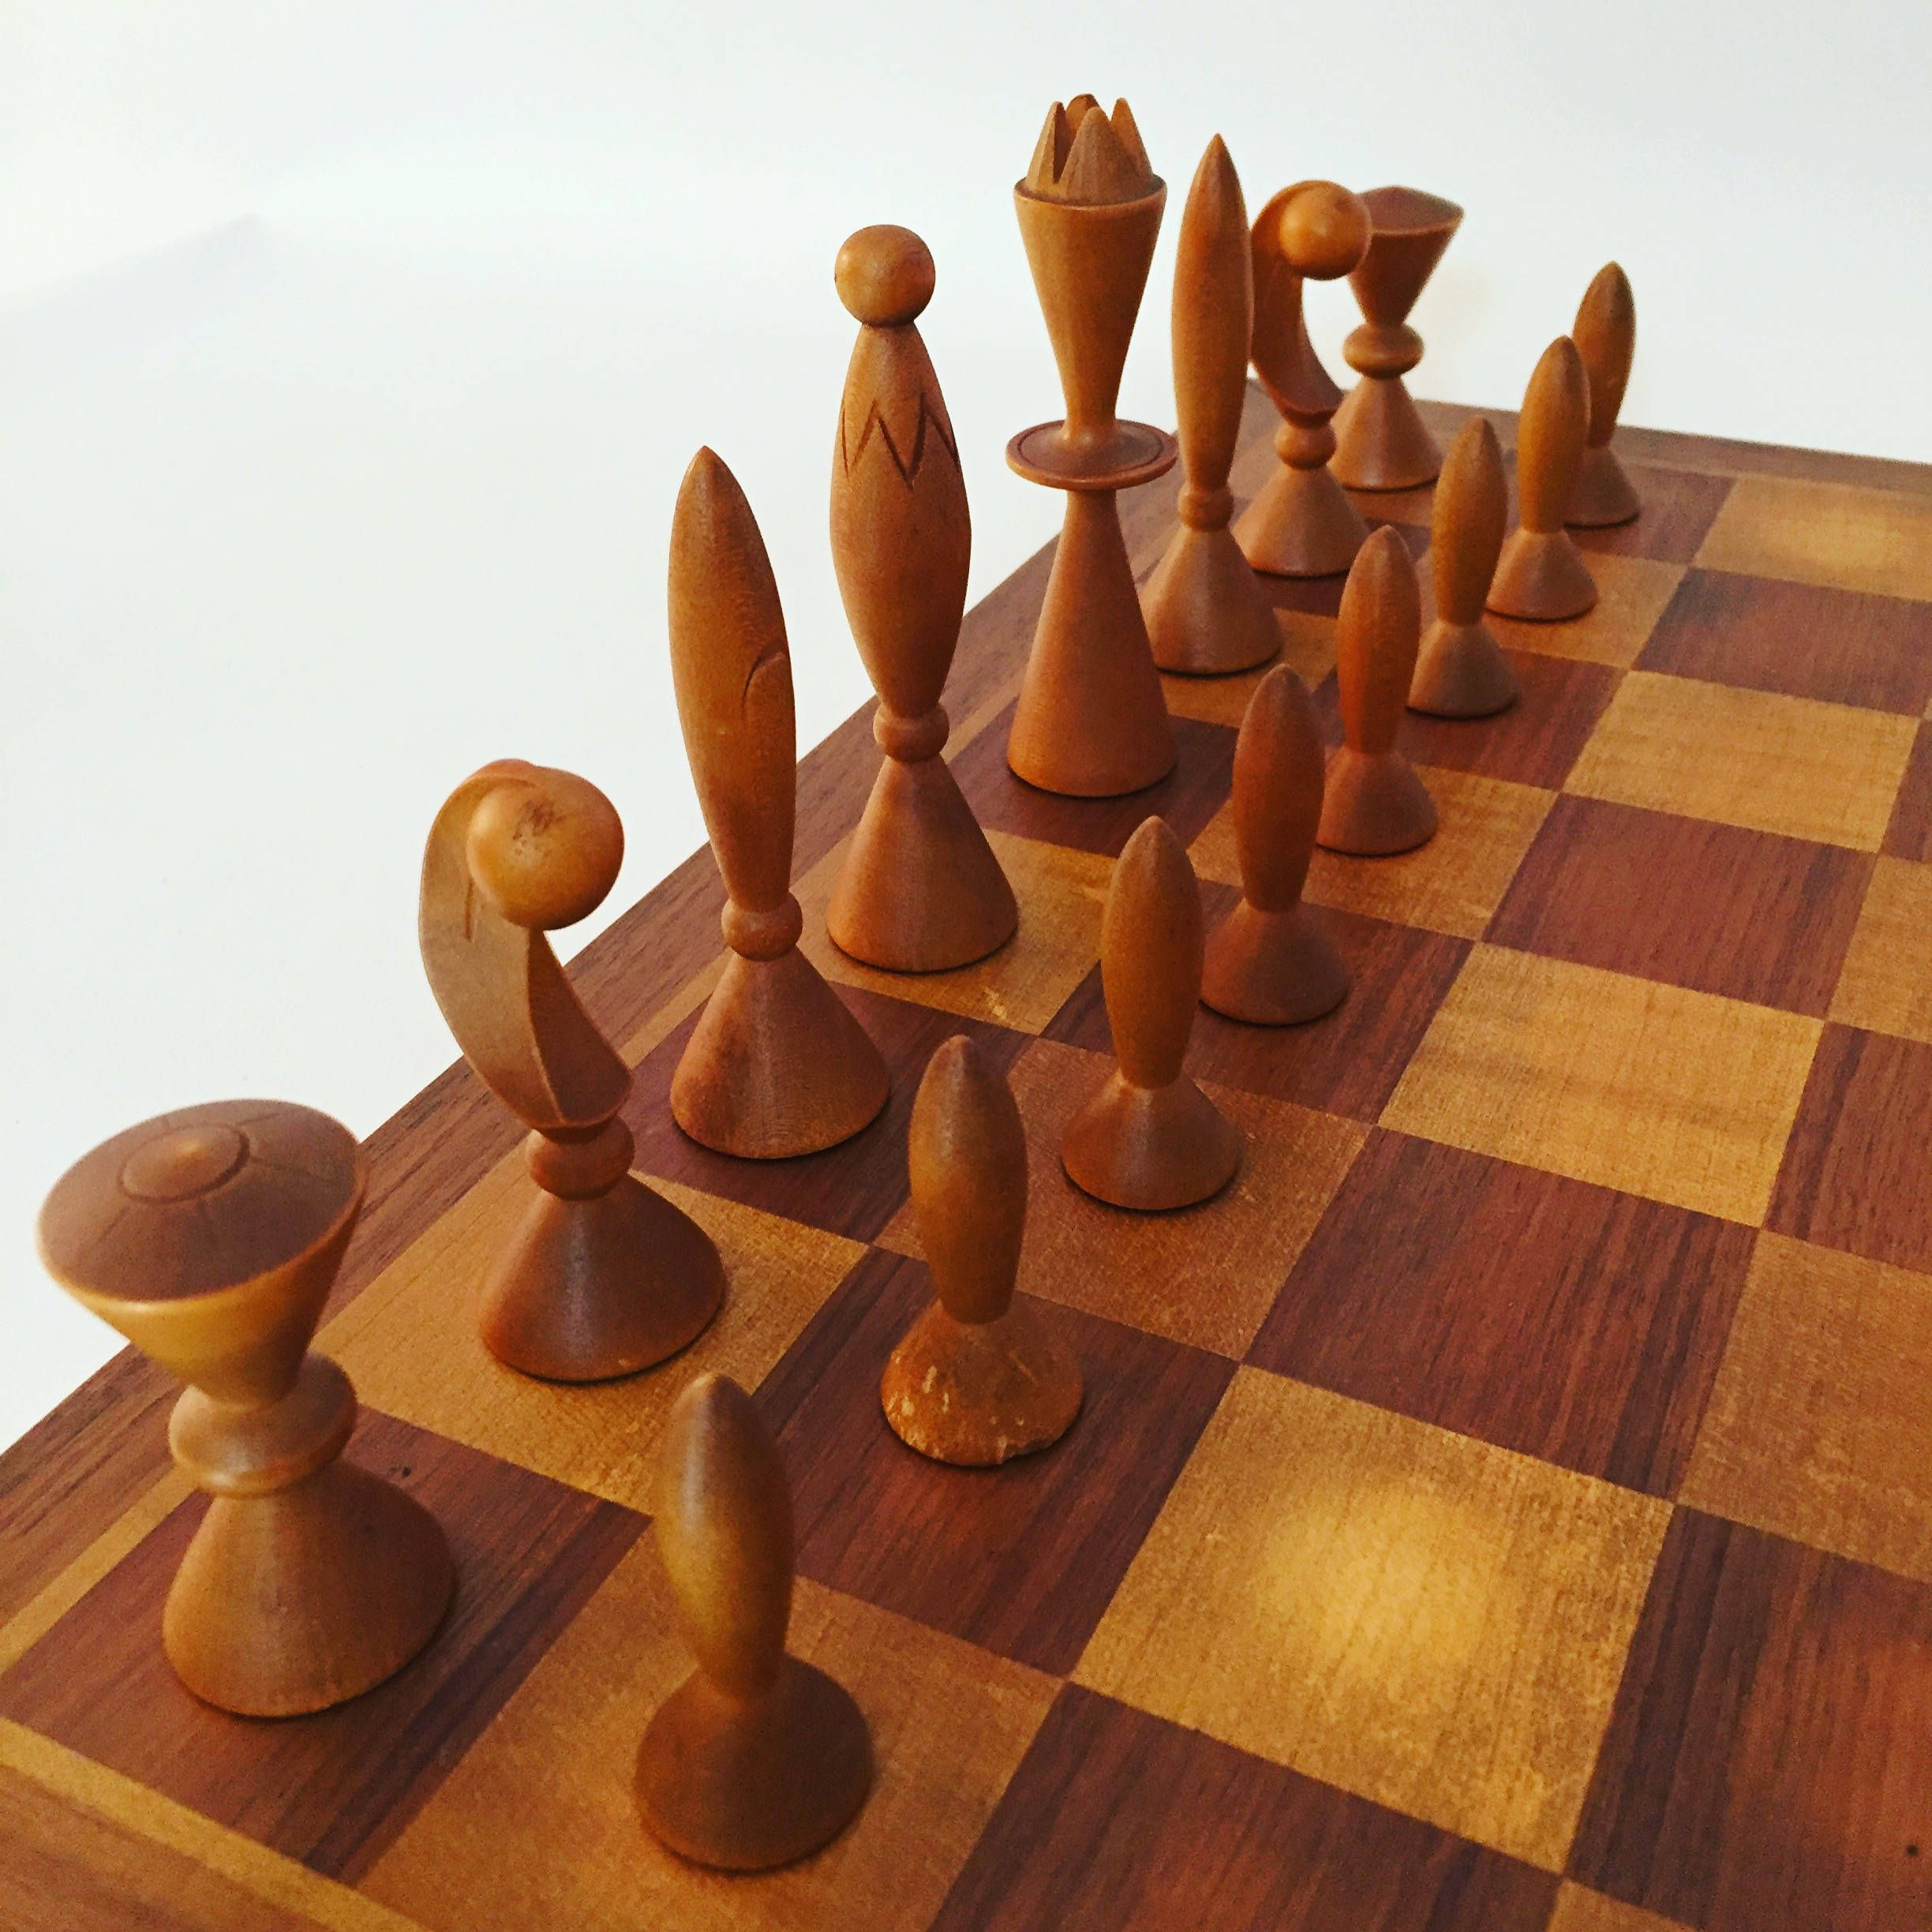 Space Age Chess Set By Arthur Elliott For Anri By Anthonyrosamodern On Etsy Chess Set Chess Wooden Chess Pieces